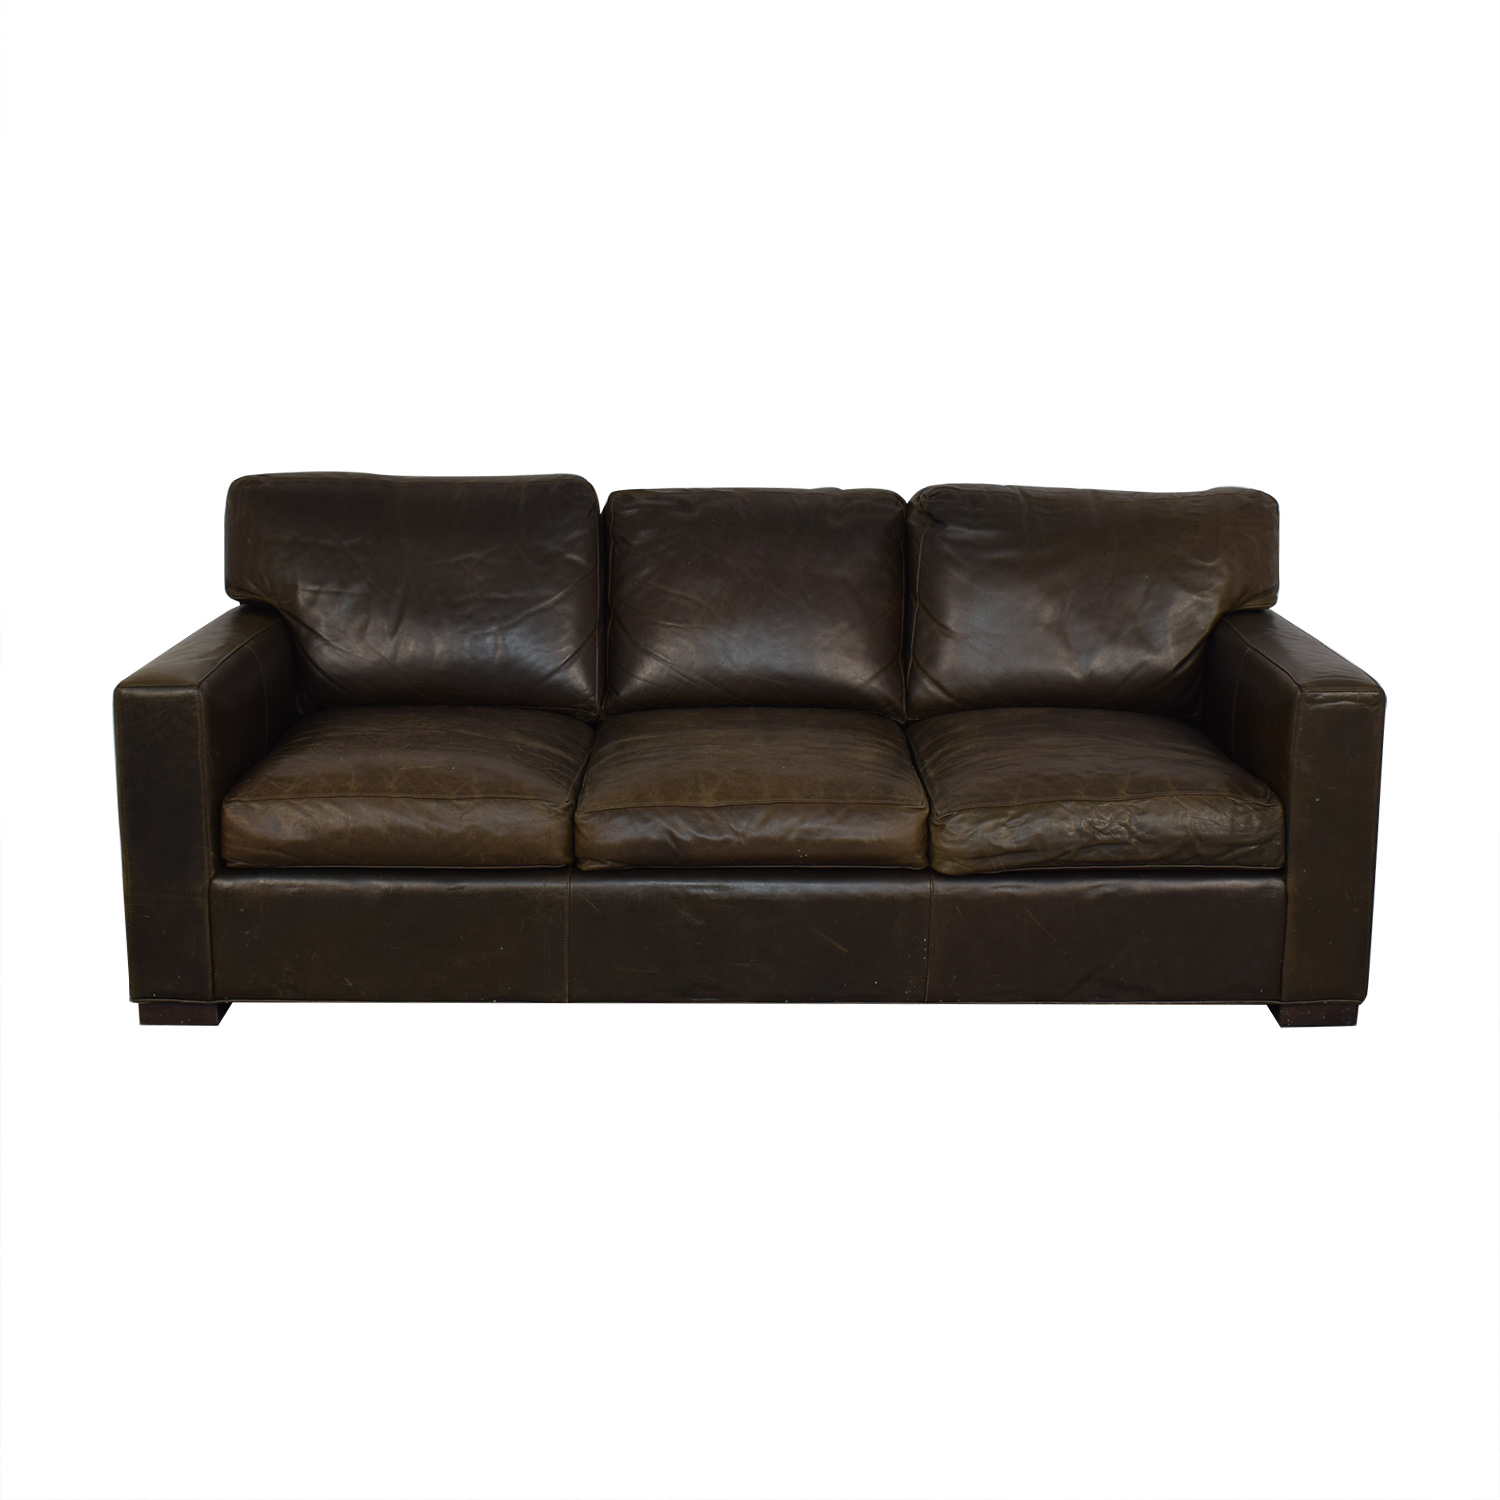 Crate & Barrel Crate & Barrel Axis II Three-Seat Sofa ma